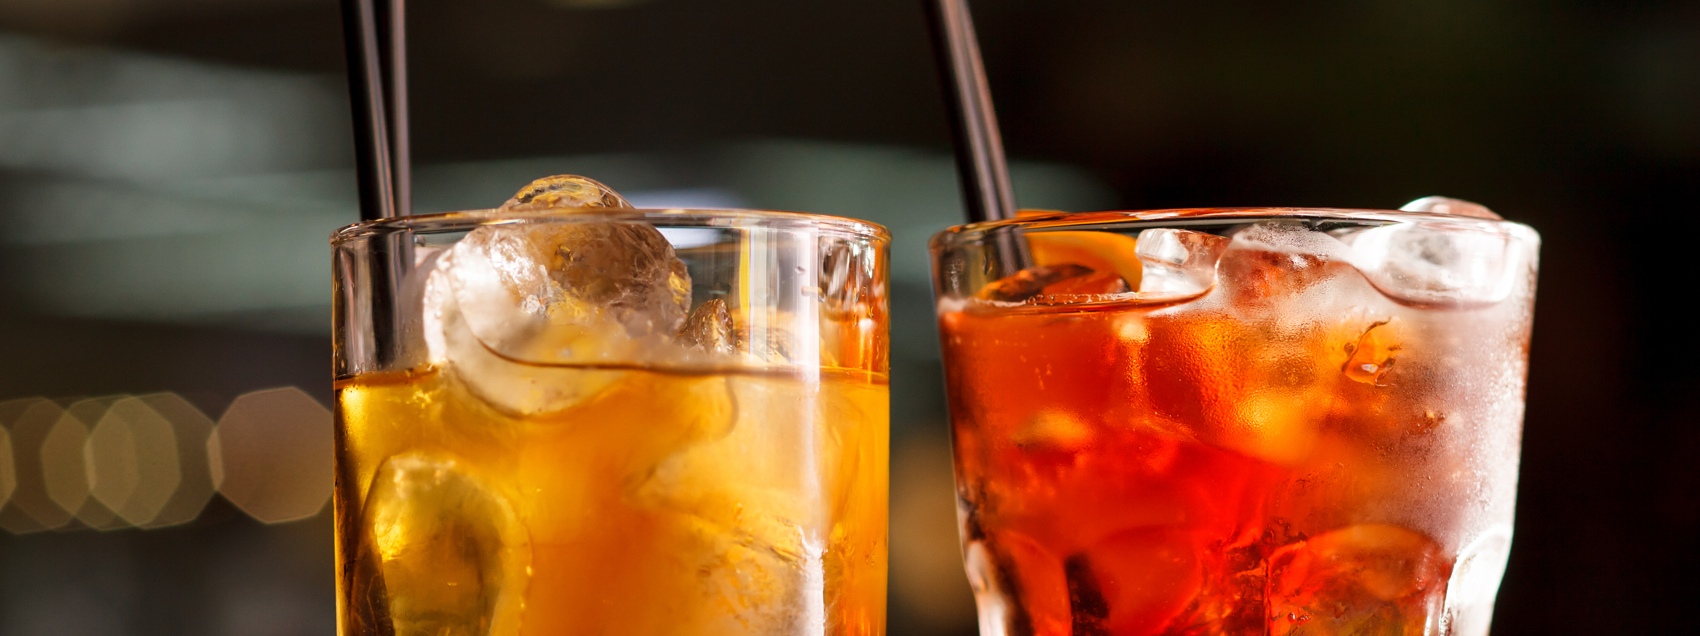 New Orleans Old Fashioned Drink Recipe